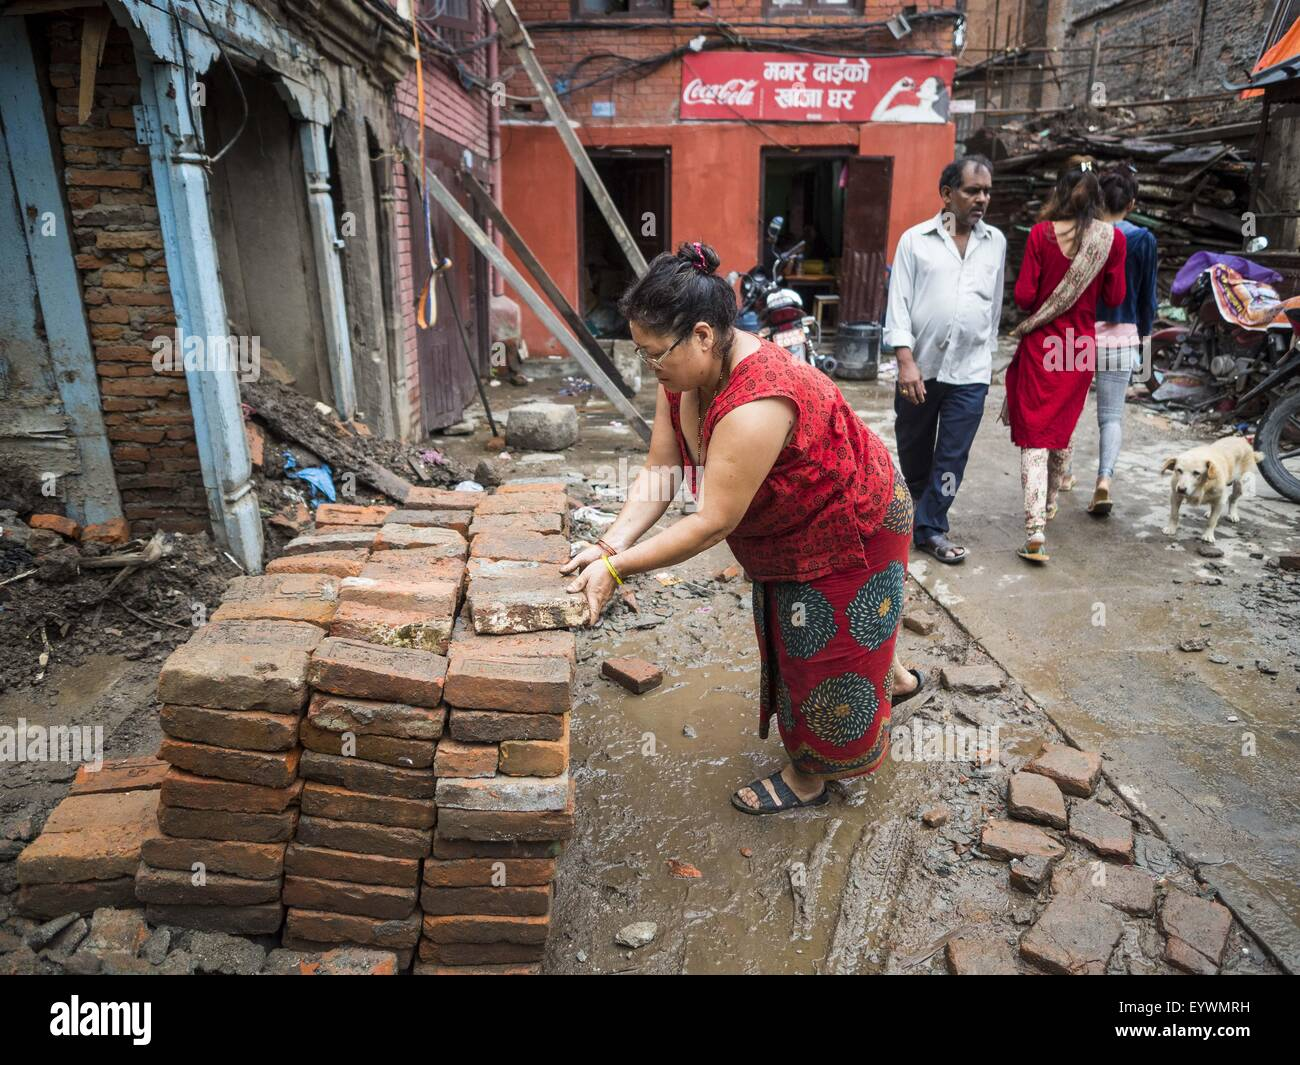 July 30, 2015 - Kathmandu, Nepal - A woman collects clay bricks for recycling and reuse around her home in Kathmandu - Stock Image